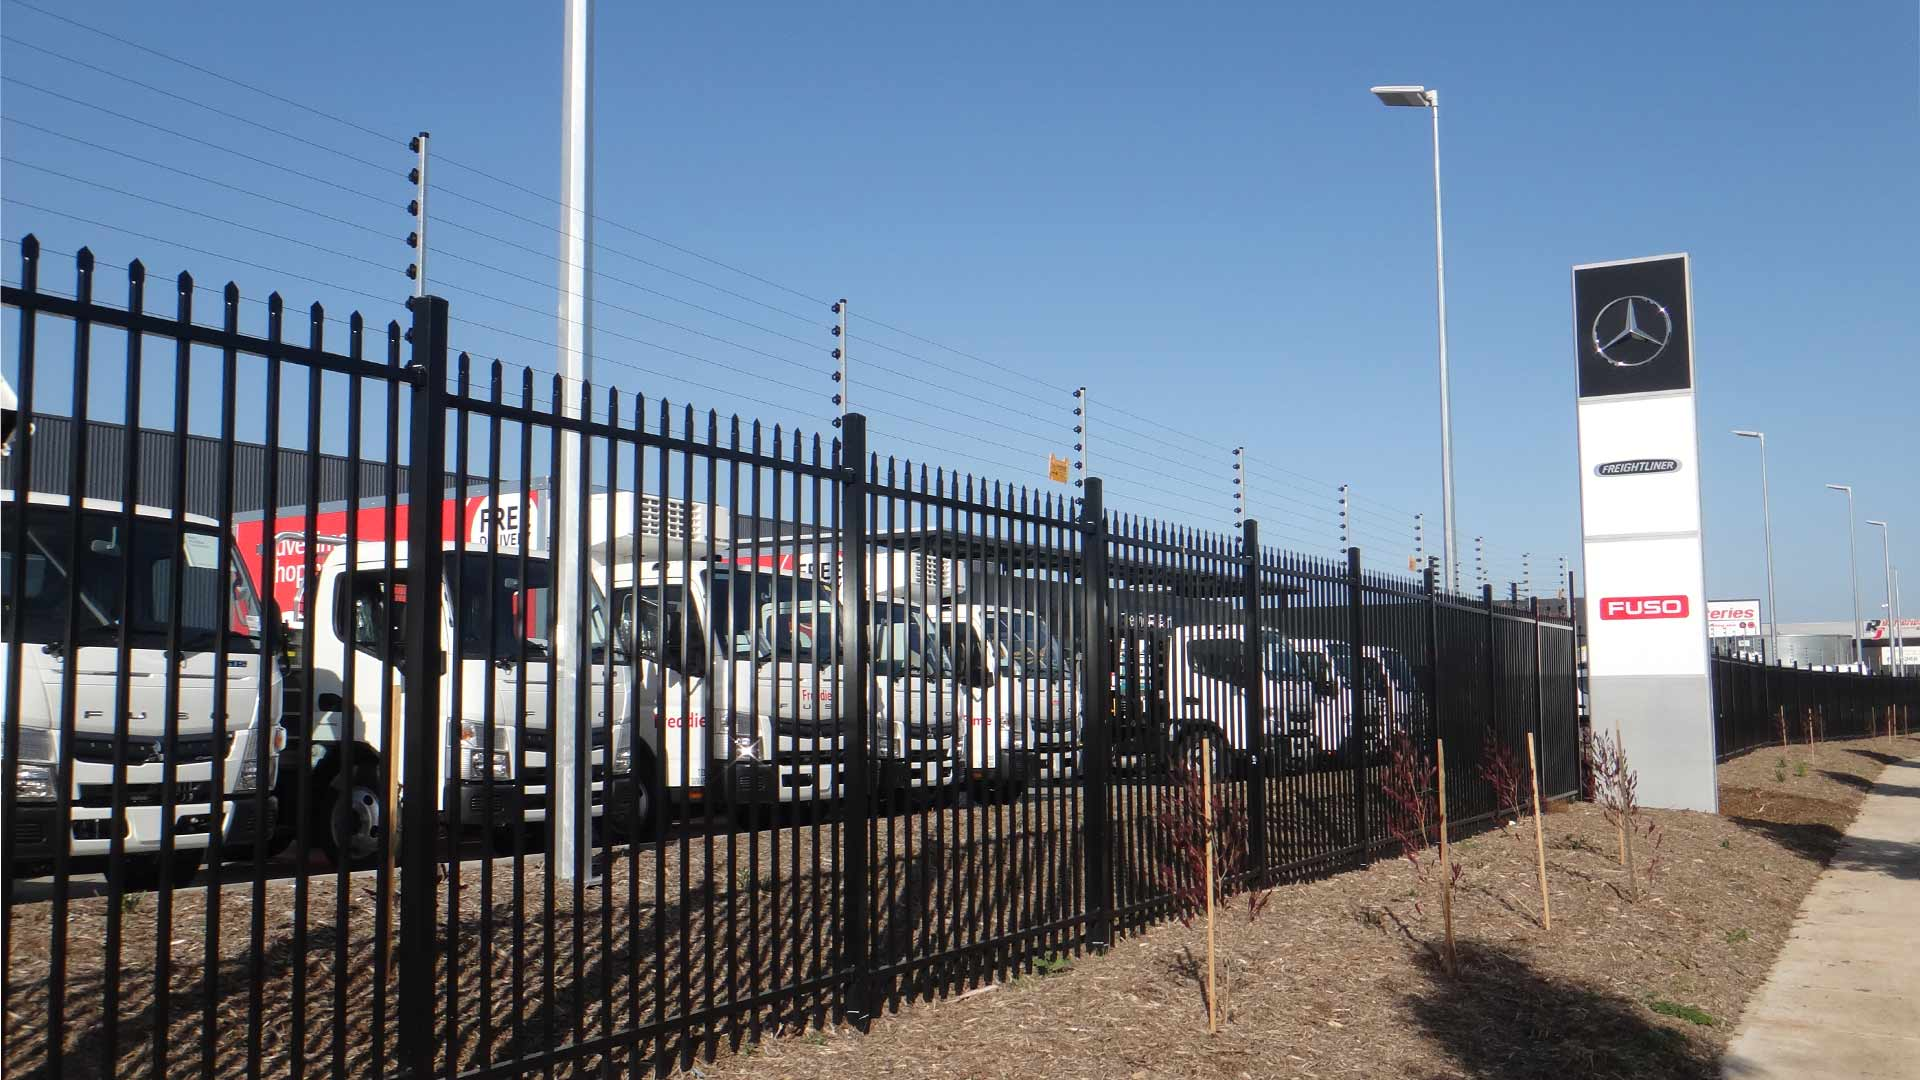 victorian electric fencing, monitored electric fencing